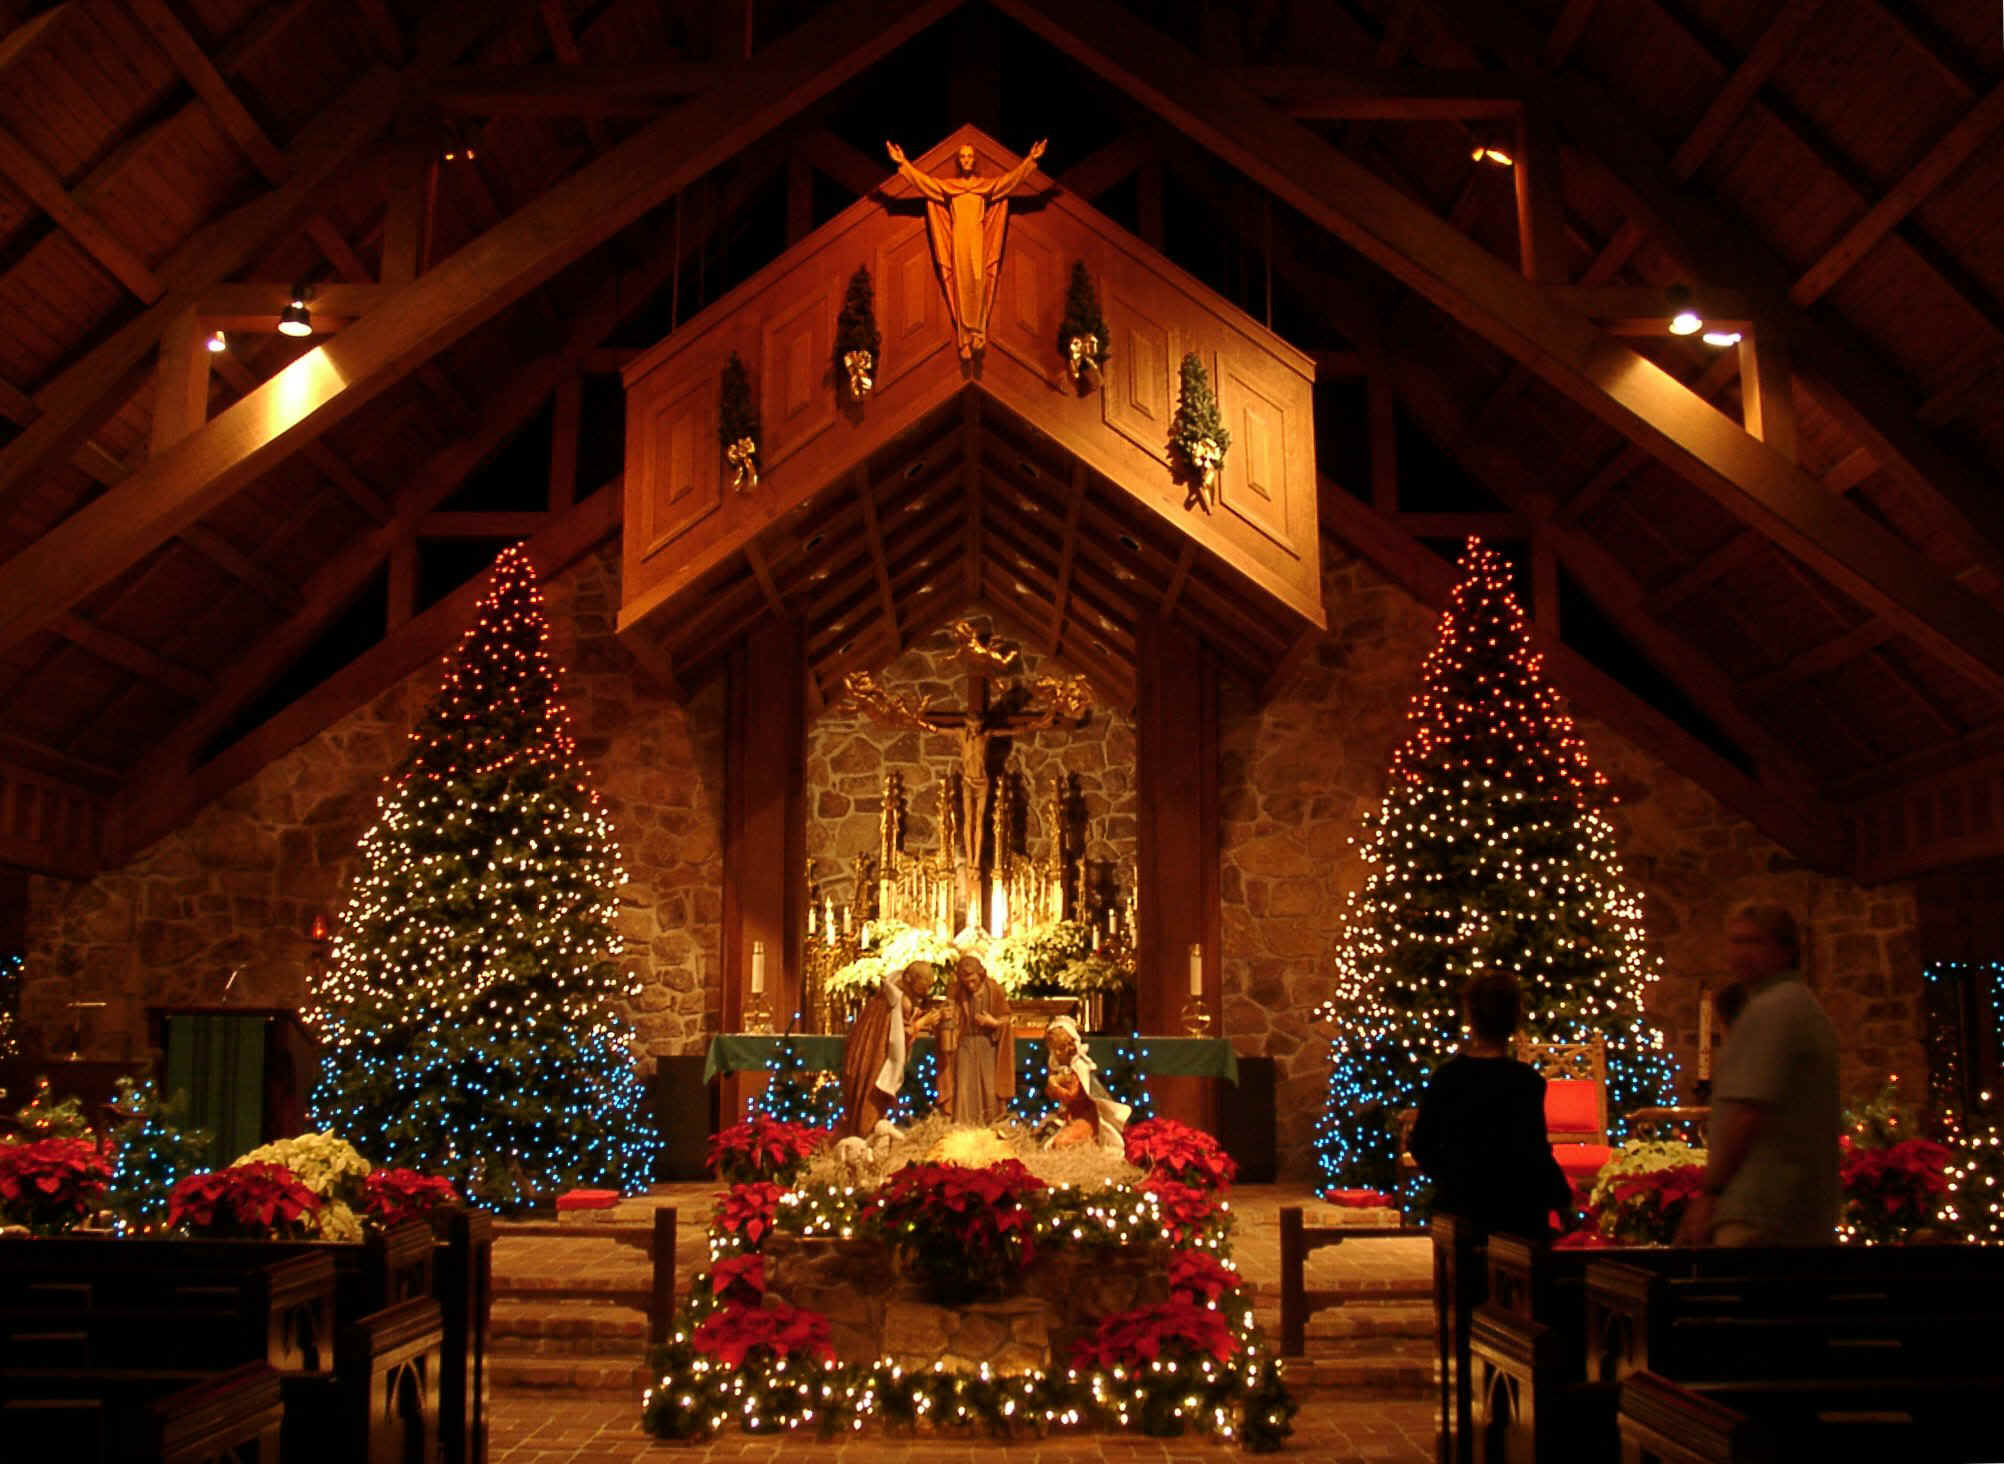 Church Scenes at Natale